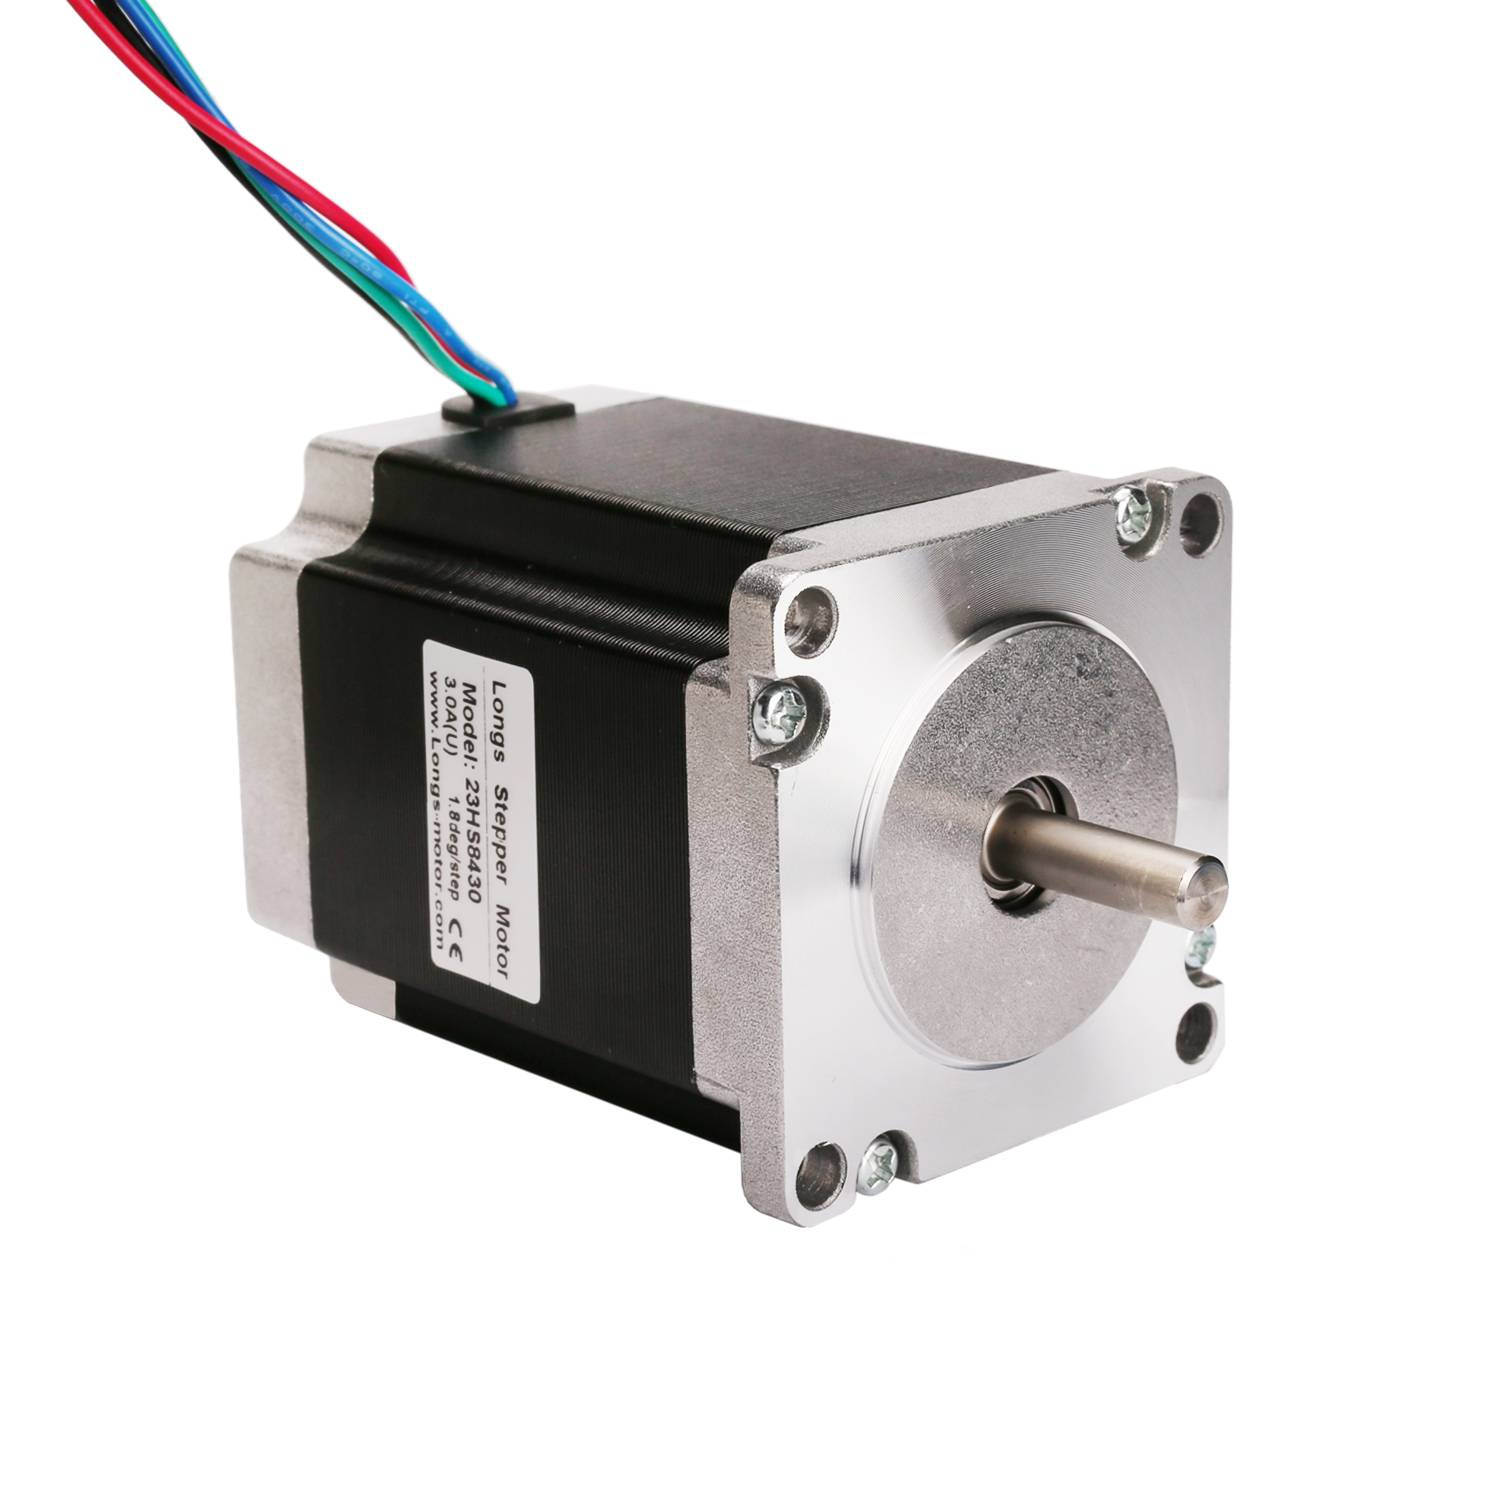 HYBRID stepmotor-nema23HS Featured Billede